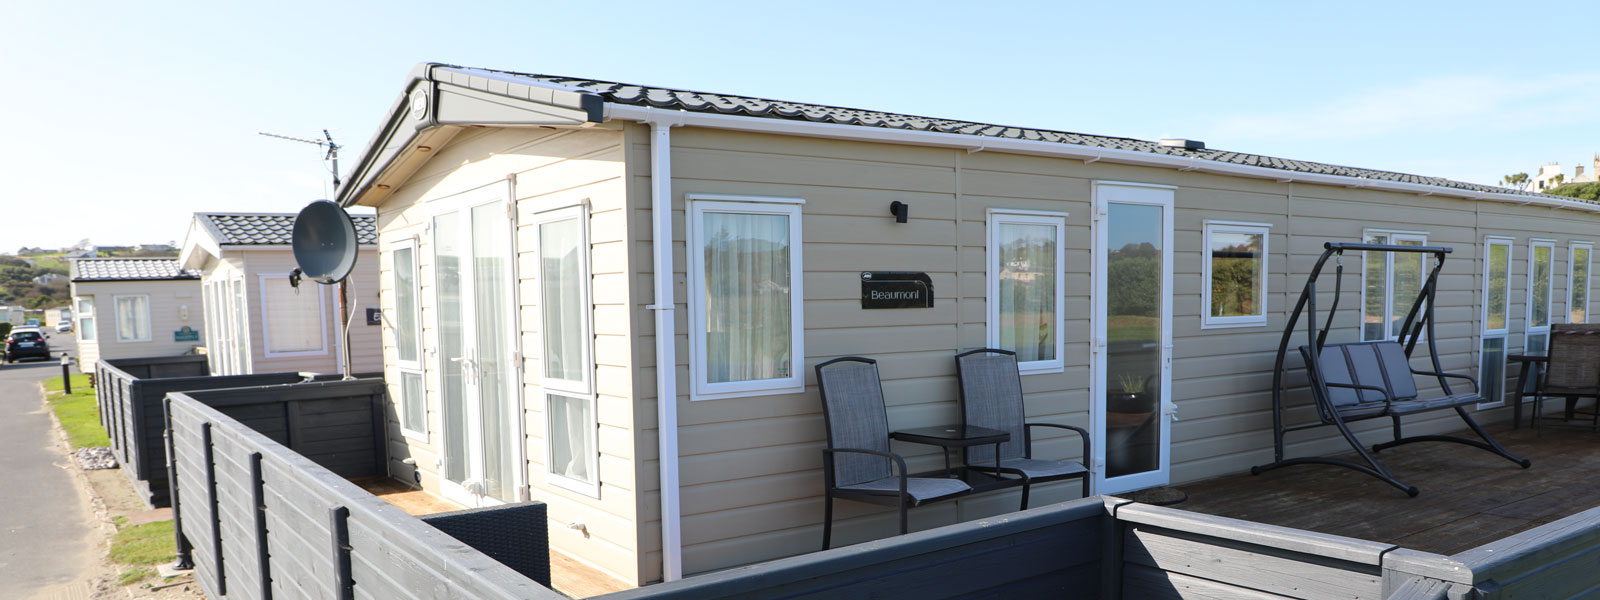 Copper Coast Holiday Park